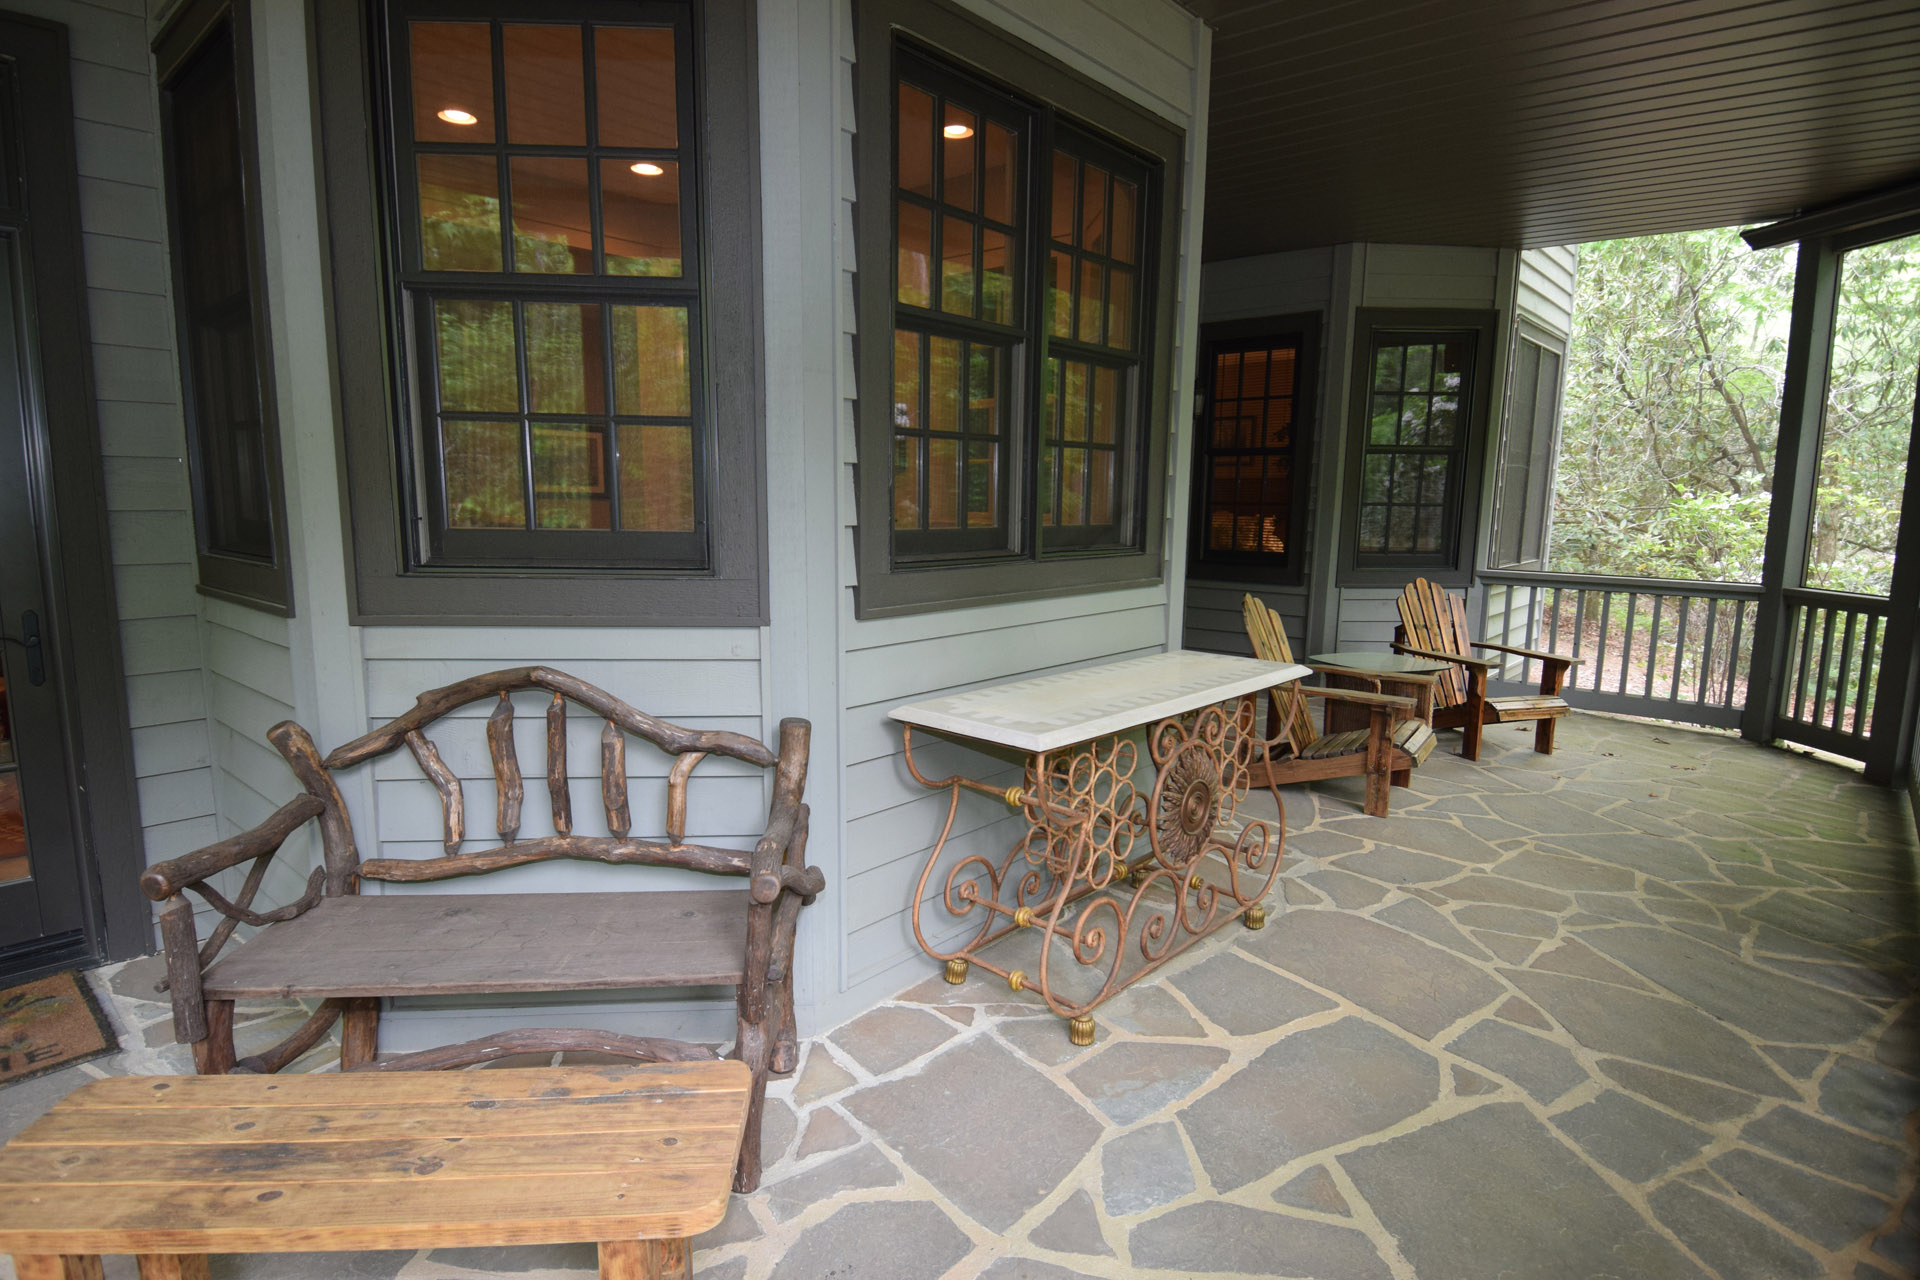 ShilohCreekModelHome_2017Revisions_ScreenedPorch1.jpg